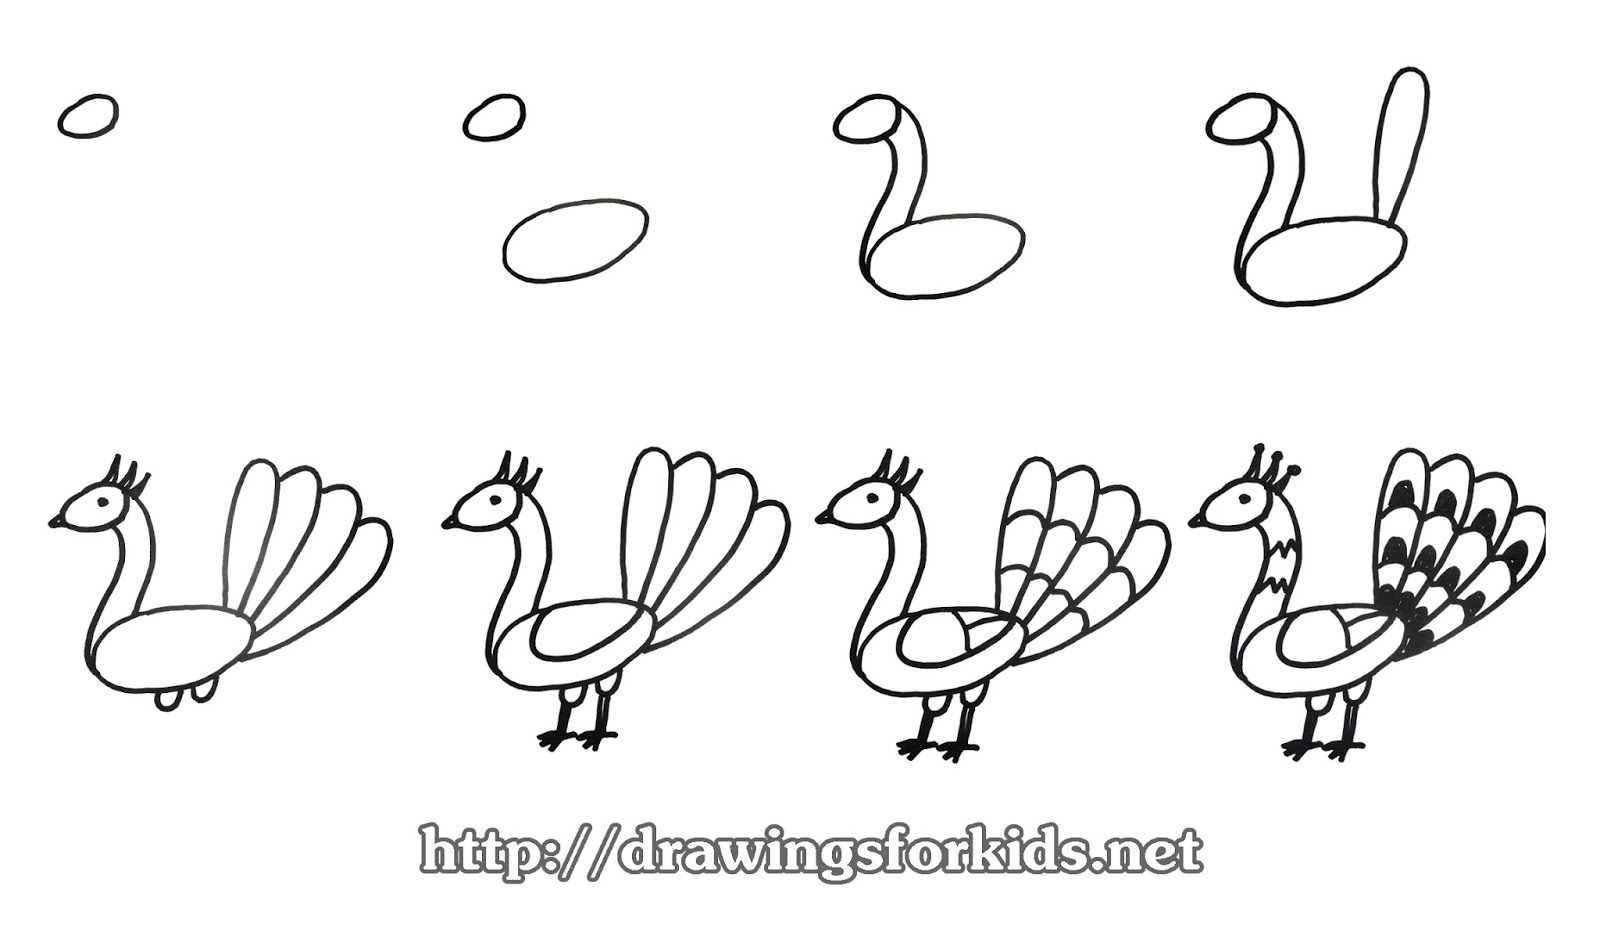 how to draw peacock step by step for kids peacock sketch for kids at paintingvalleycom explore kids how step to peacock by draw step for